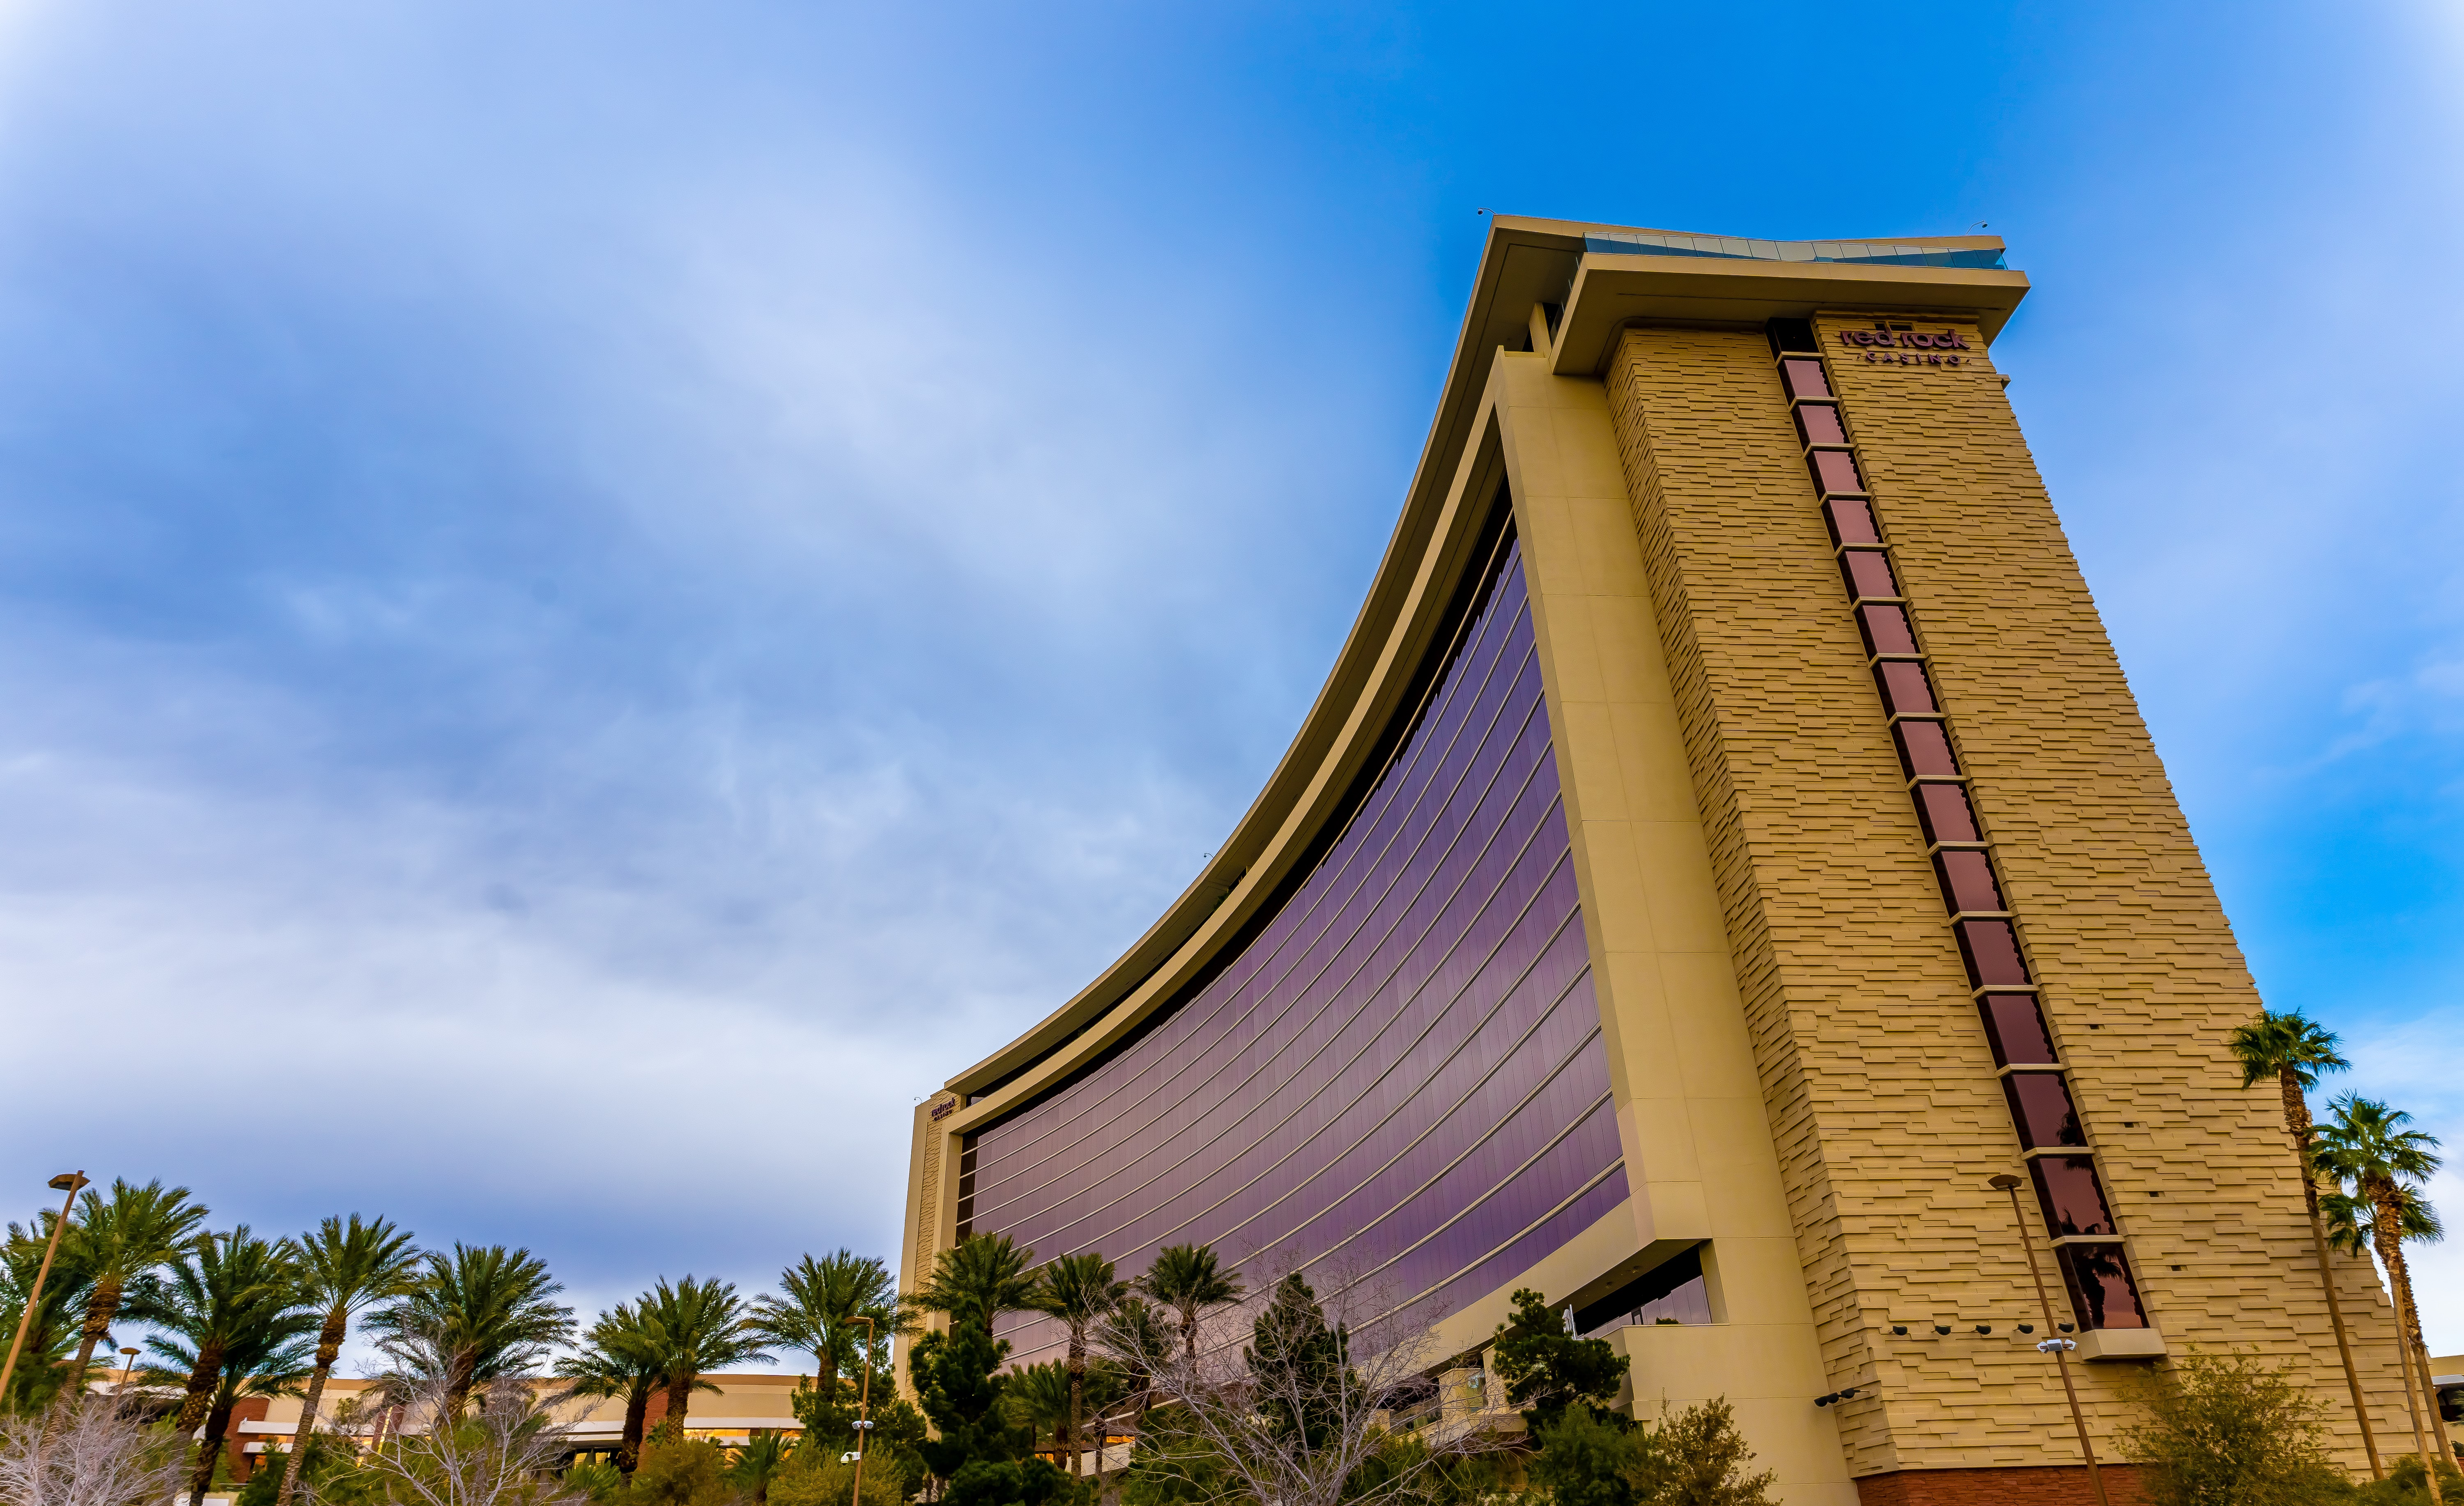 Red Rock Casino - LasVegasRealEstate.com - Photo by McKenzie Woodcock